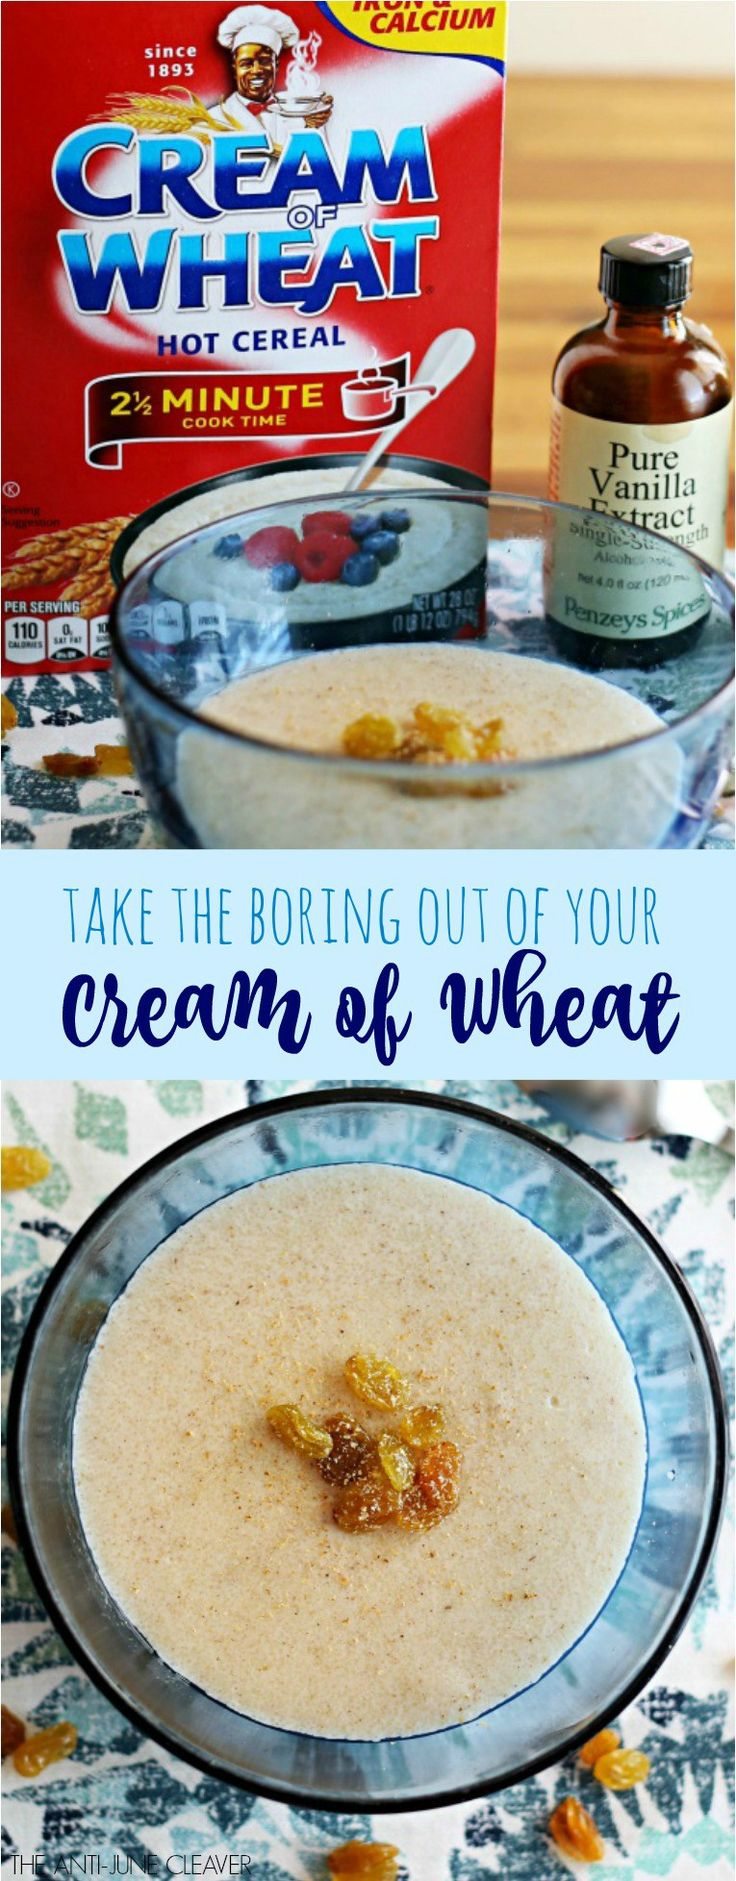 Life is Too Short to Eat Boring Cream of Wheat                                                                                                                                                      More